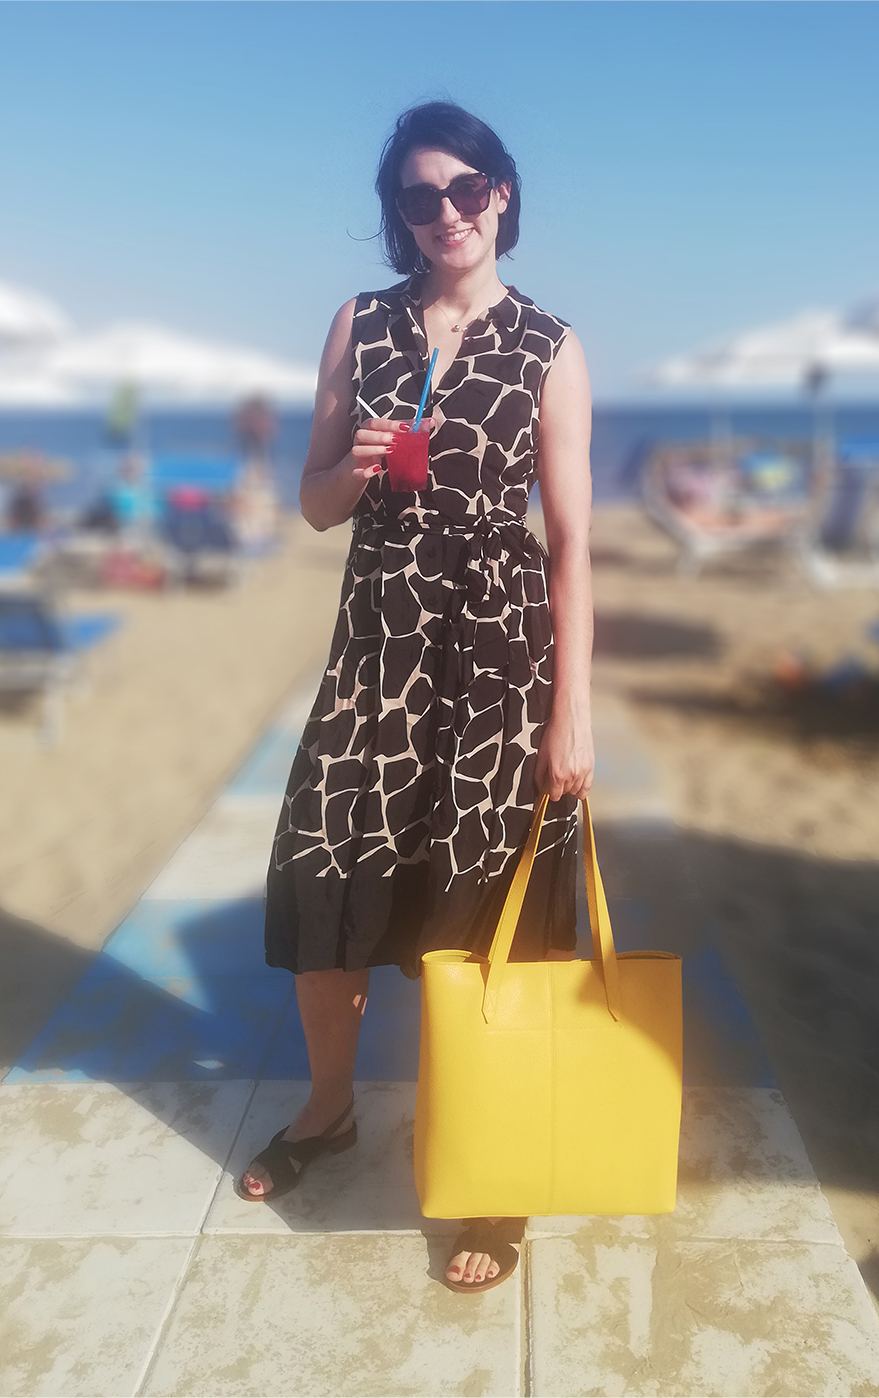 Marta Bonfaci, Senior Ecommerce Assistant, stands by the seaside holding a drink while wearing a sleeveless fit and flare shirt dress with an animal print, styled with a yellow tote bag and black slingback sandals.